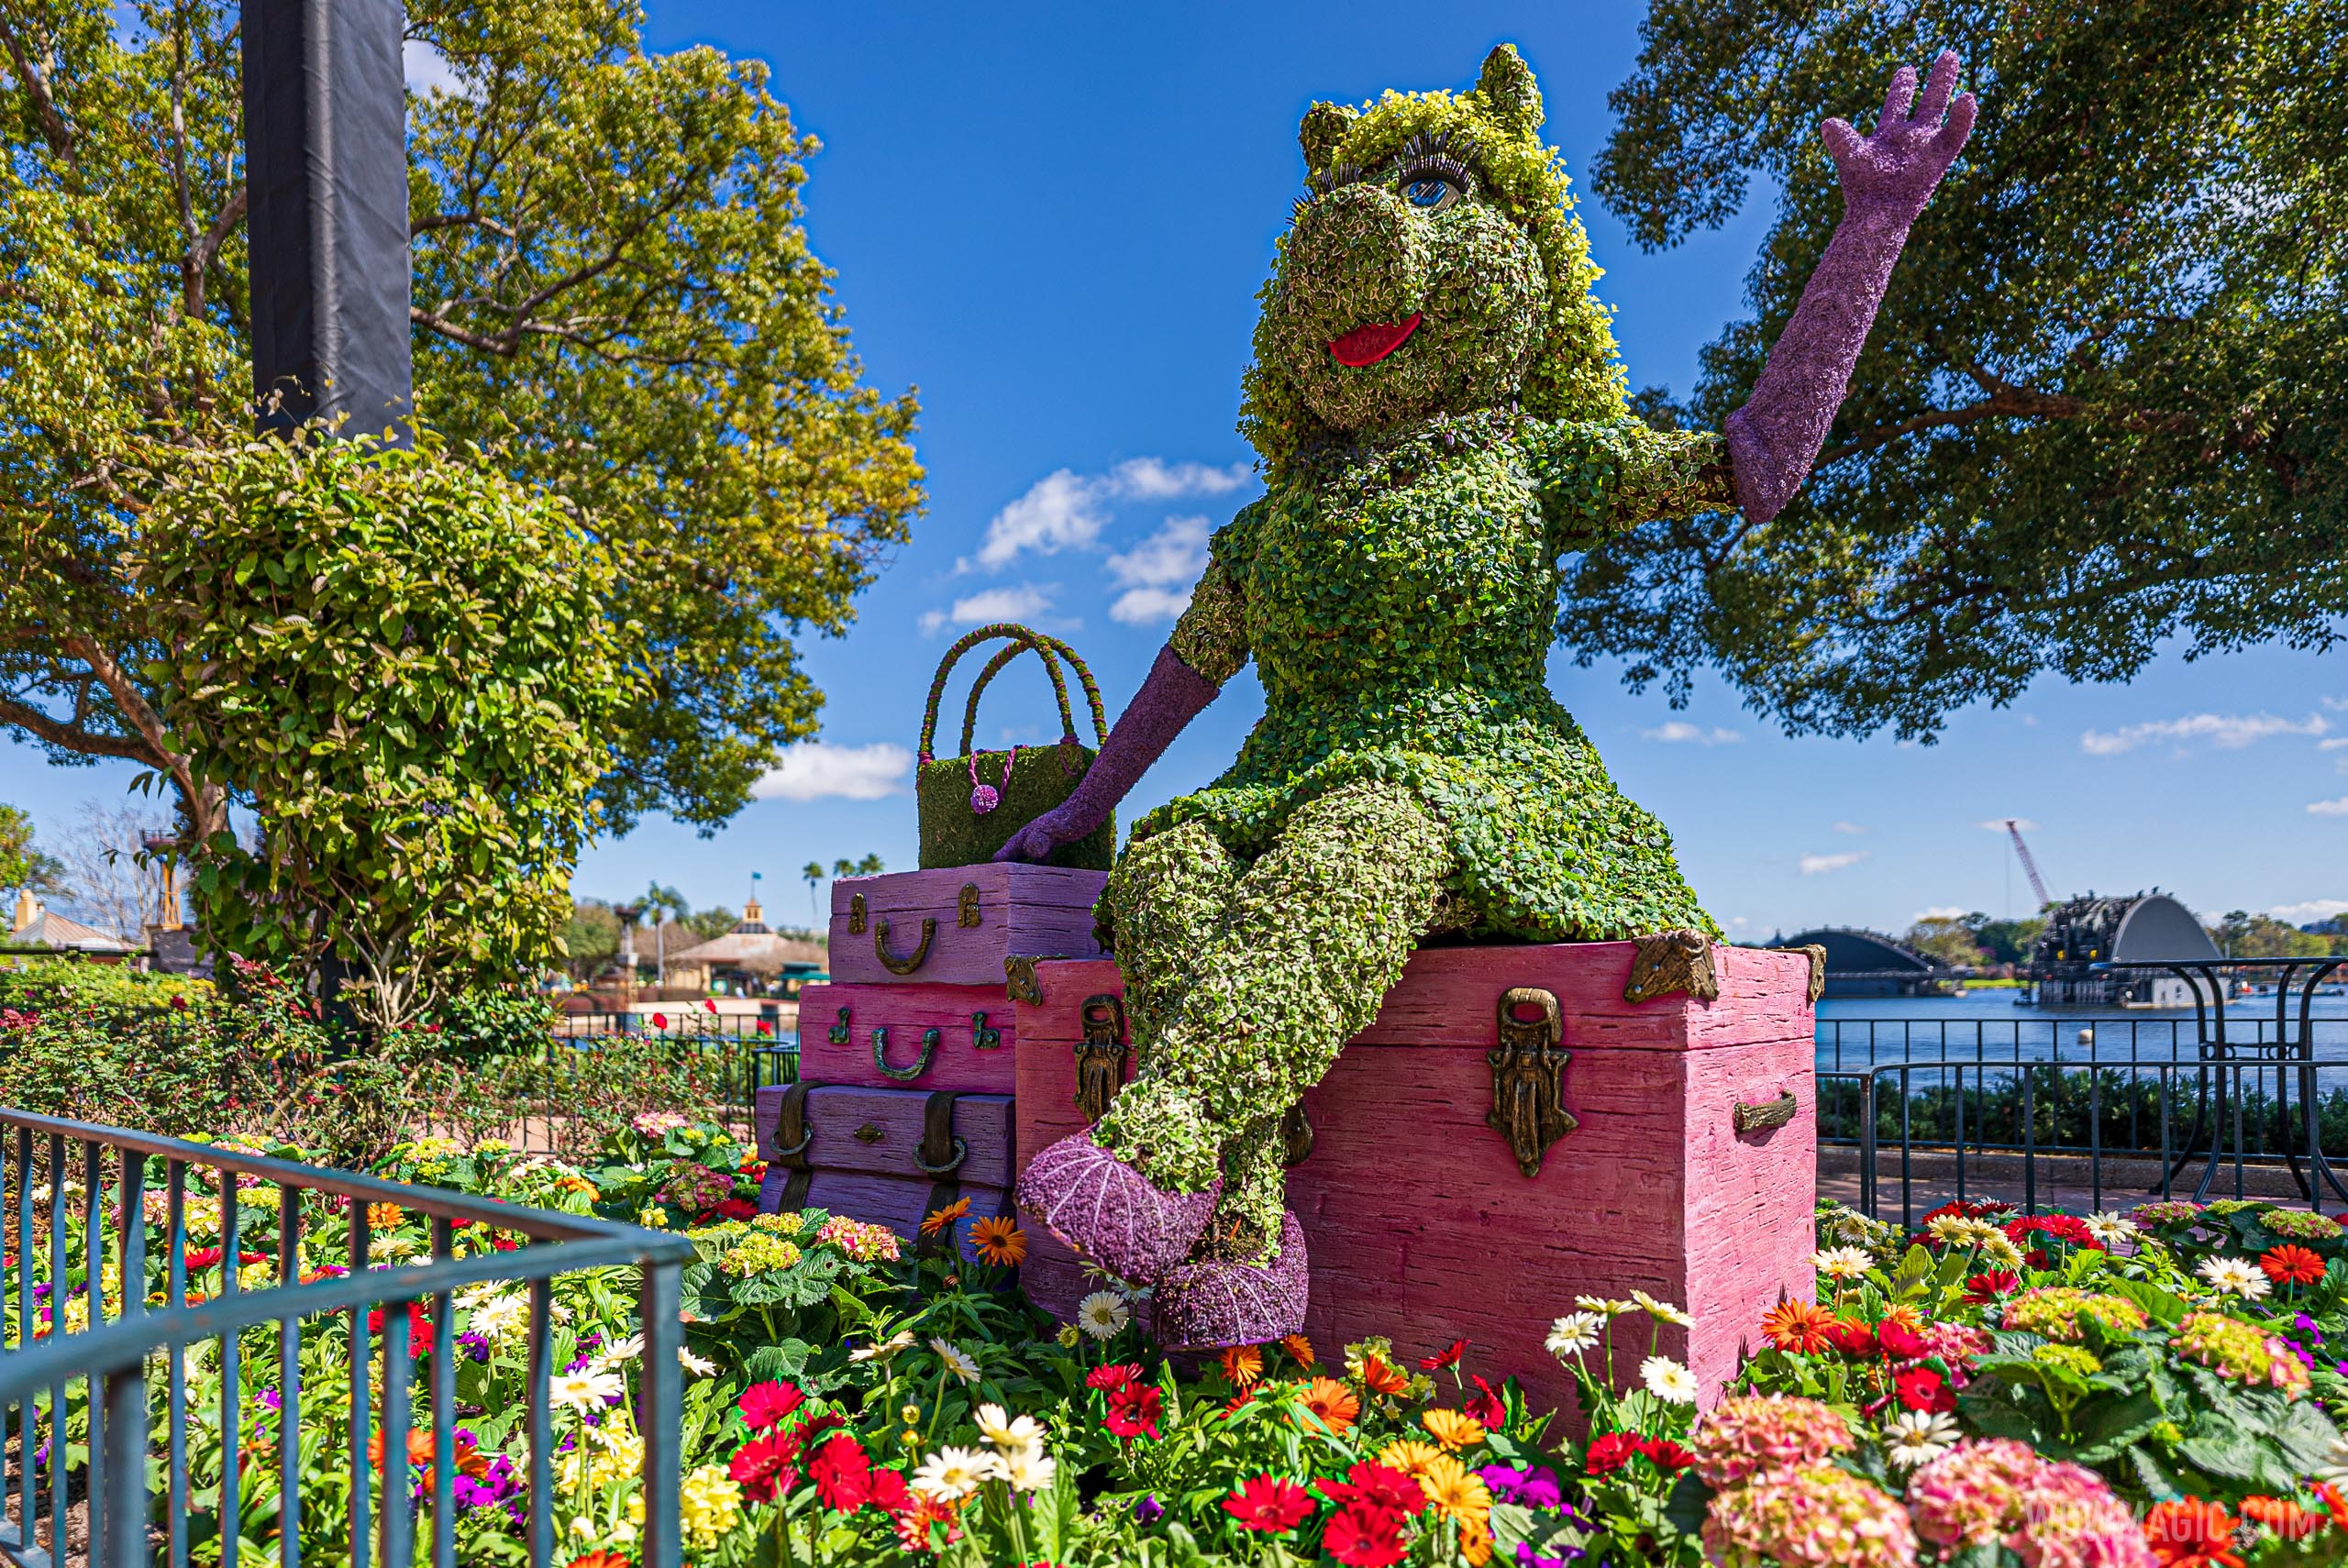 Miss Piggy – Between United Kingdom and Canada Pavilions